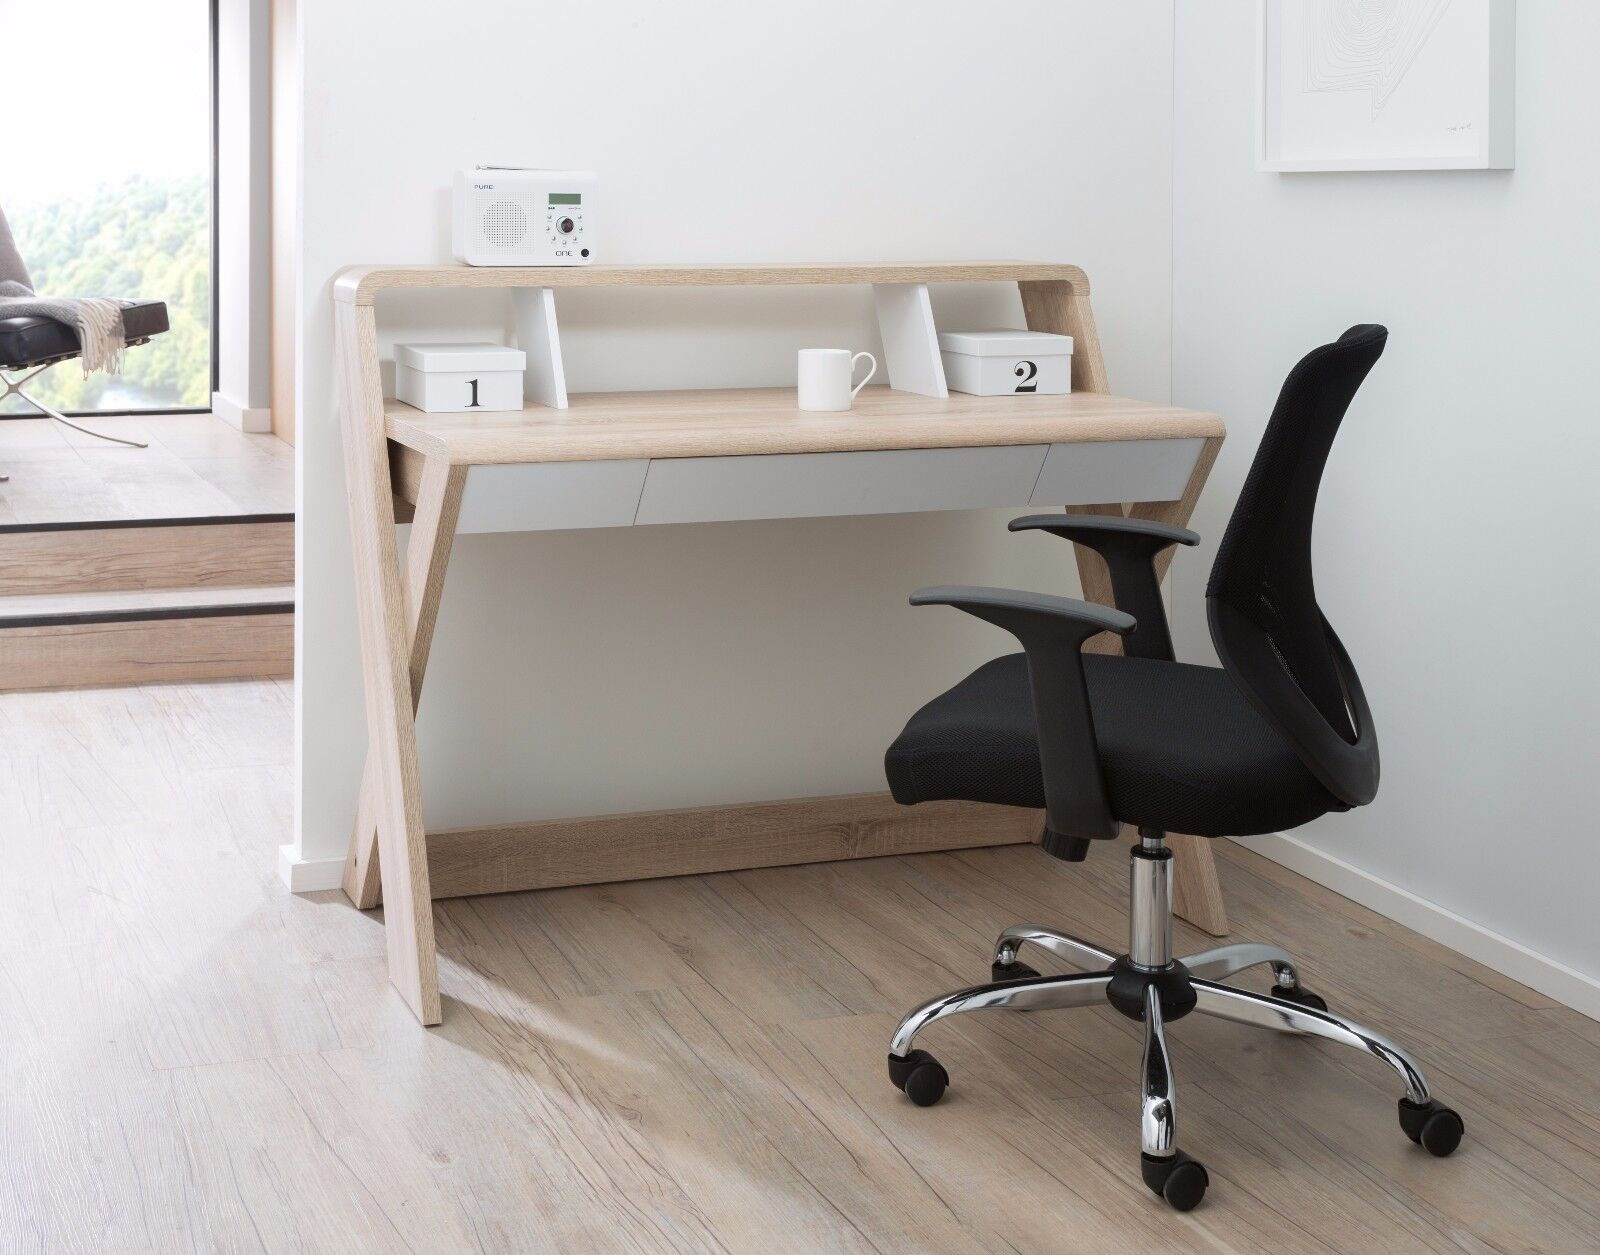 Oak Office Table Aspen Sonoma Computer Desk X Shape Workstation With Drawers